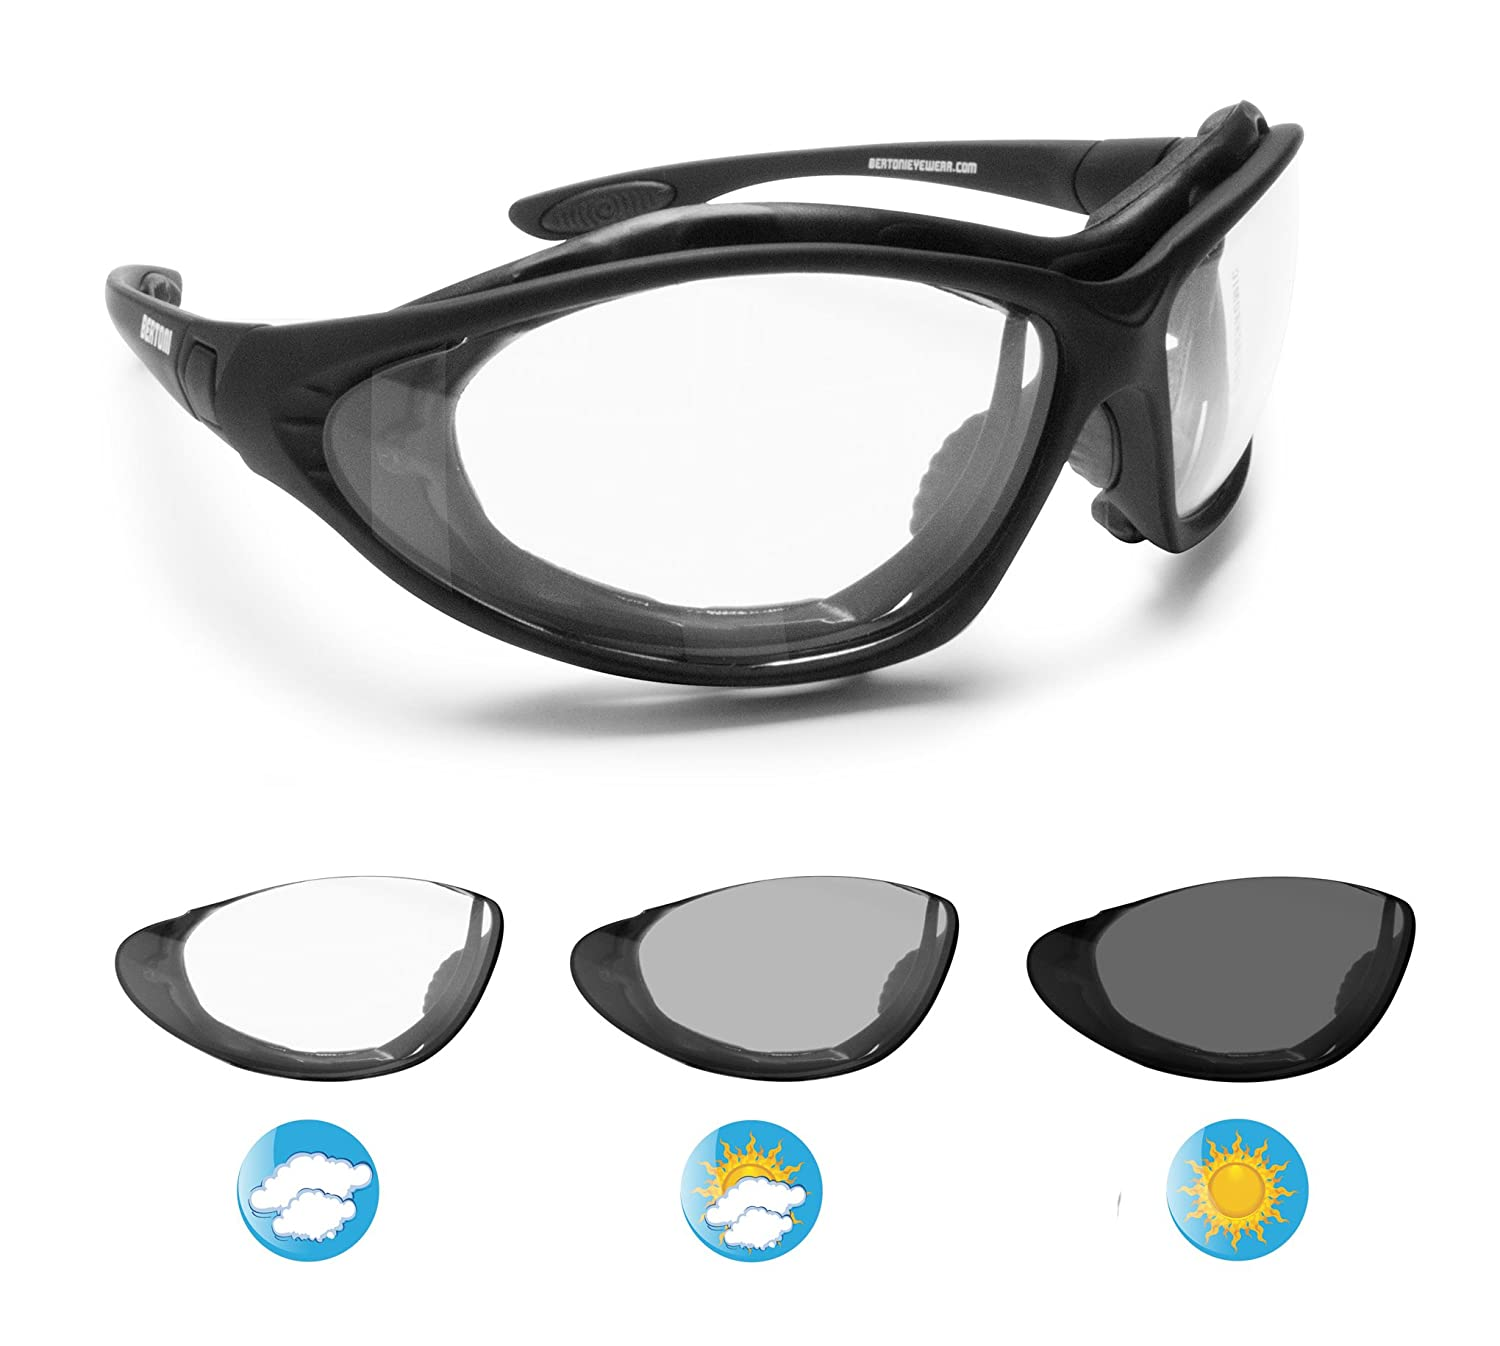 Bertoni Photochromic Motorcycle Goggles - Interchangeable Temples and Strap - antifog lens - F333A Italy Bertoni iWear